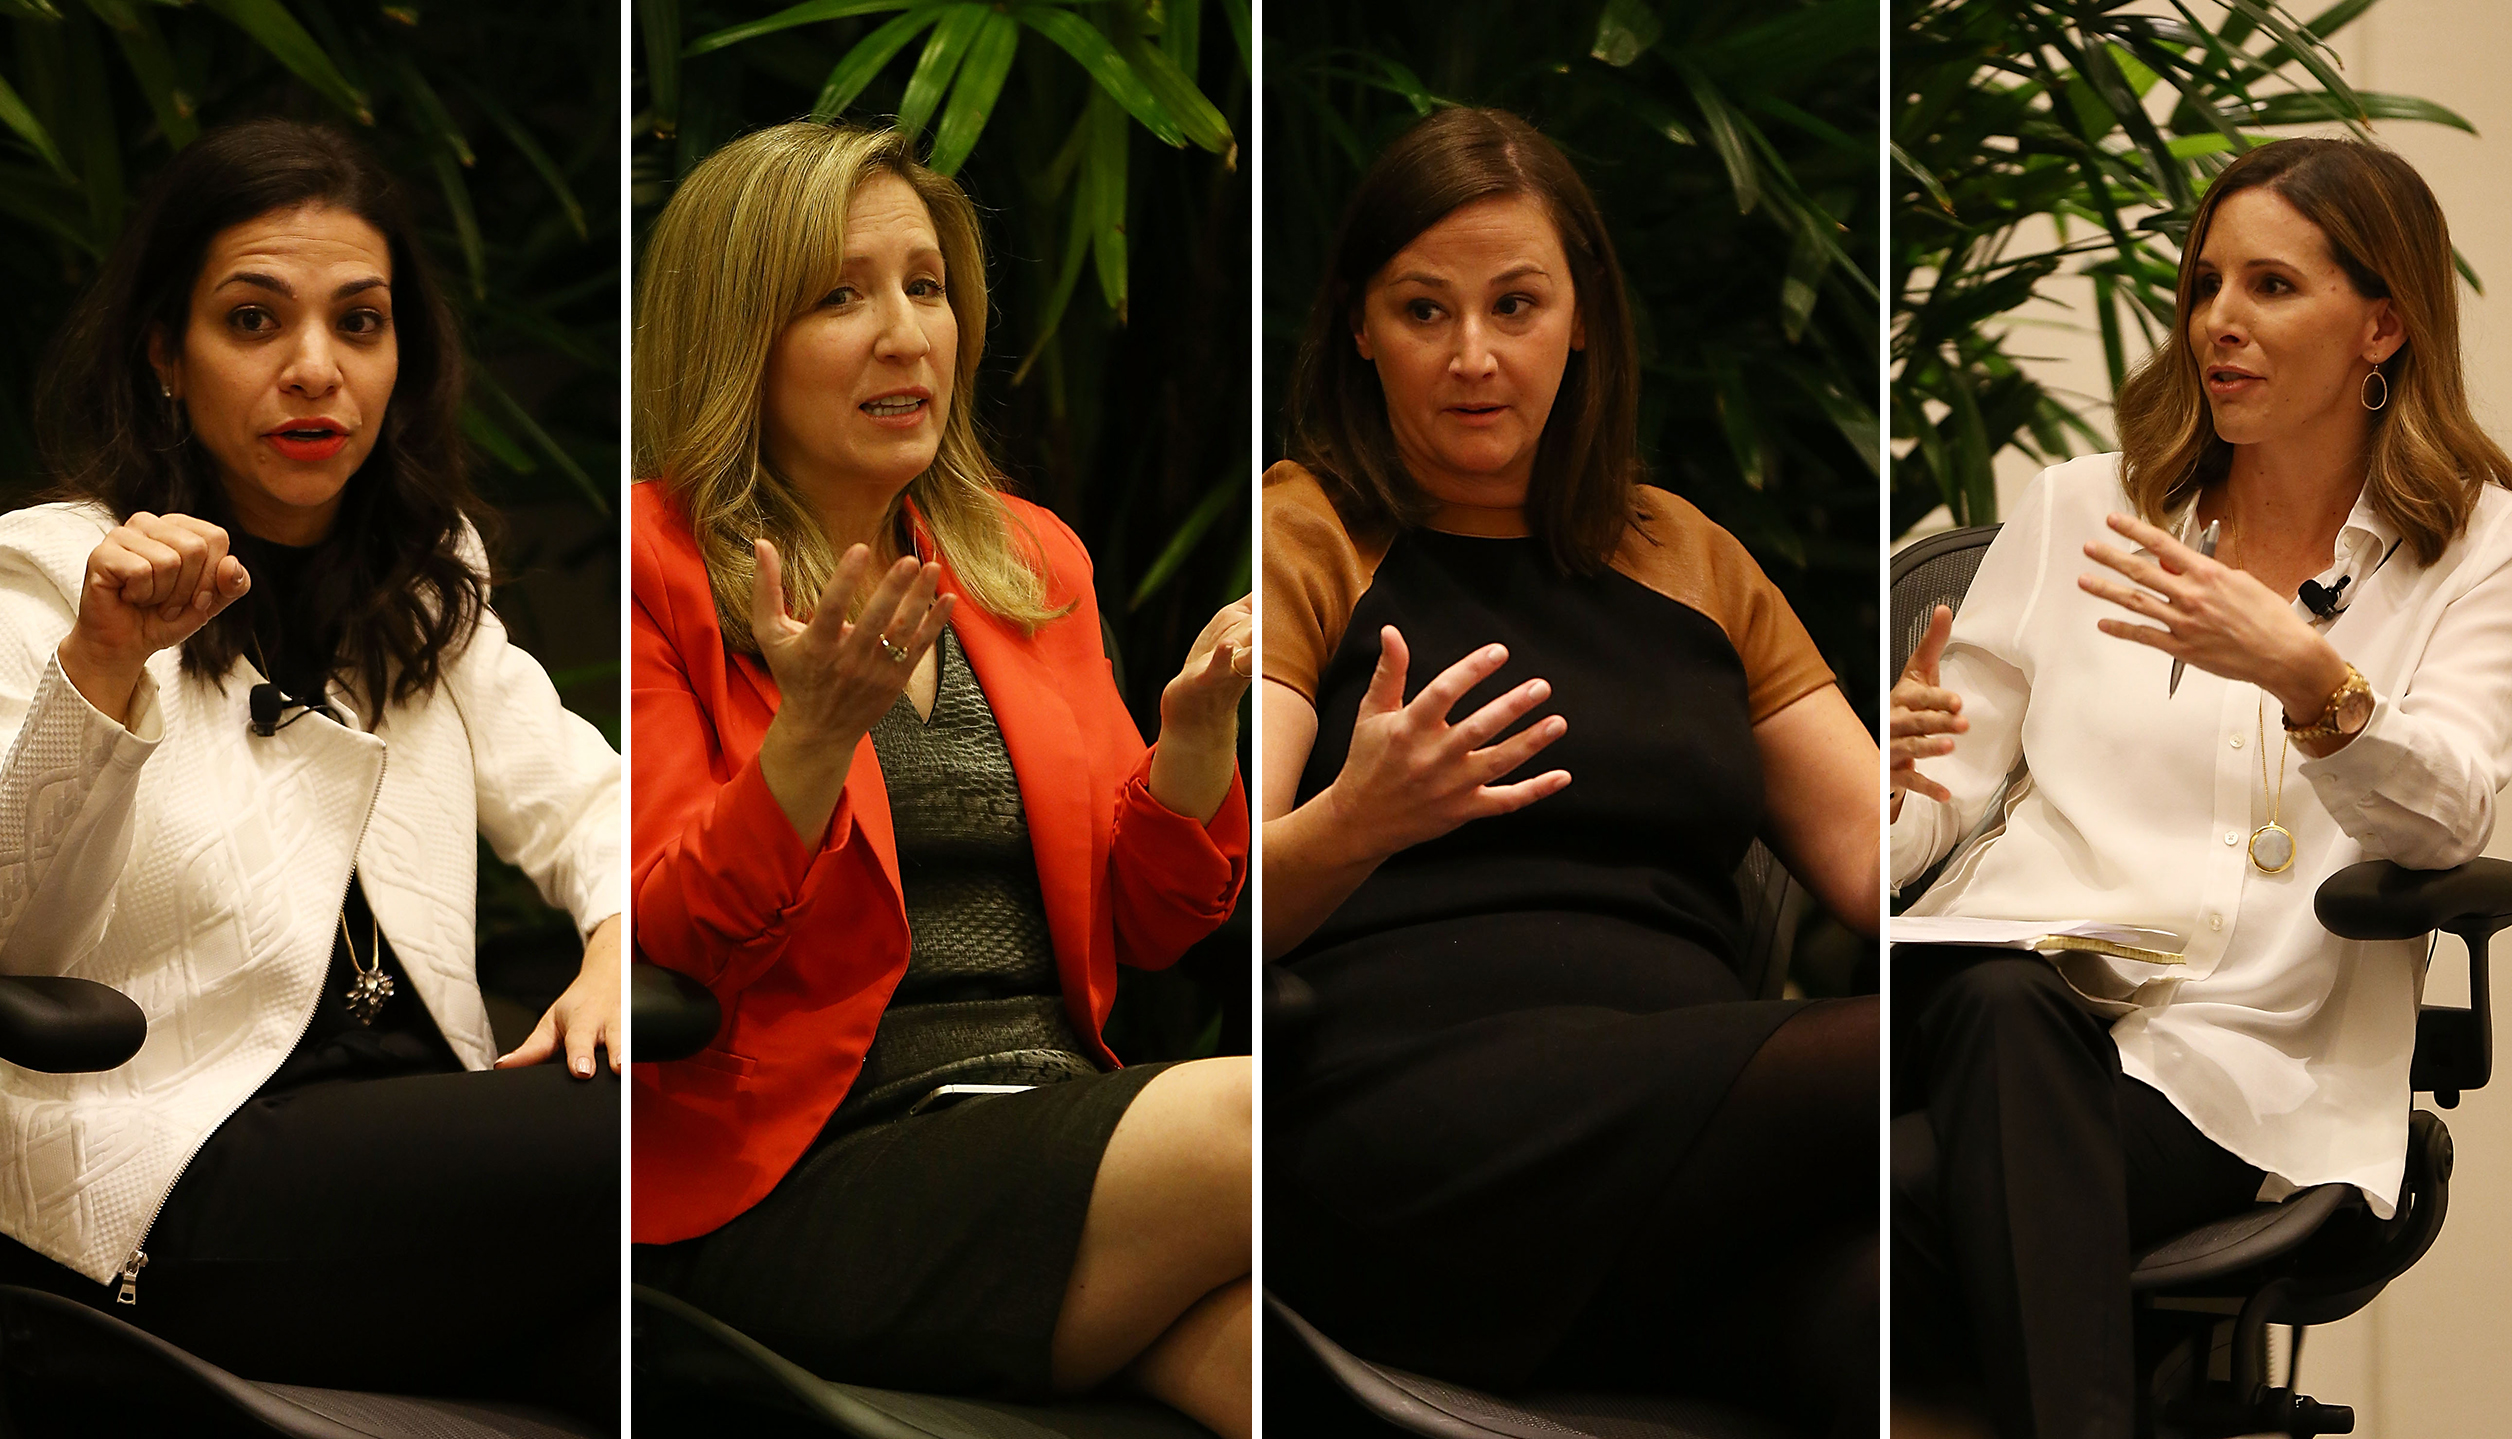 Nairi Hourdajian, left, Jennifer Dulski, Brooke Buchanan, and moderator Leigh Gallagher onstage during the Crisis Management panel at Fortune MPW Next Gen 2016 on November 30, 2016 in Dana Point, California.